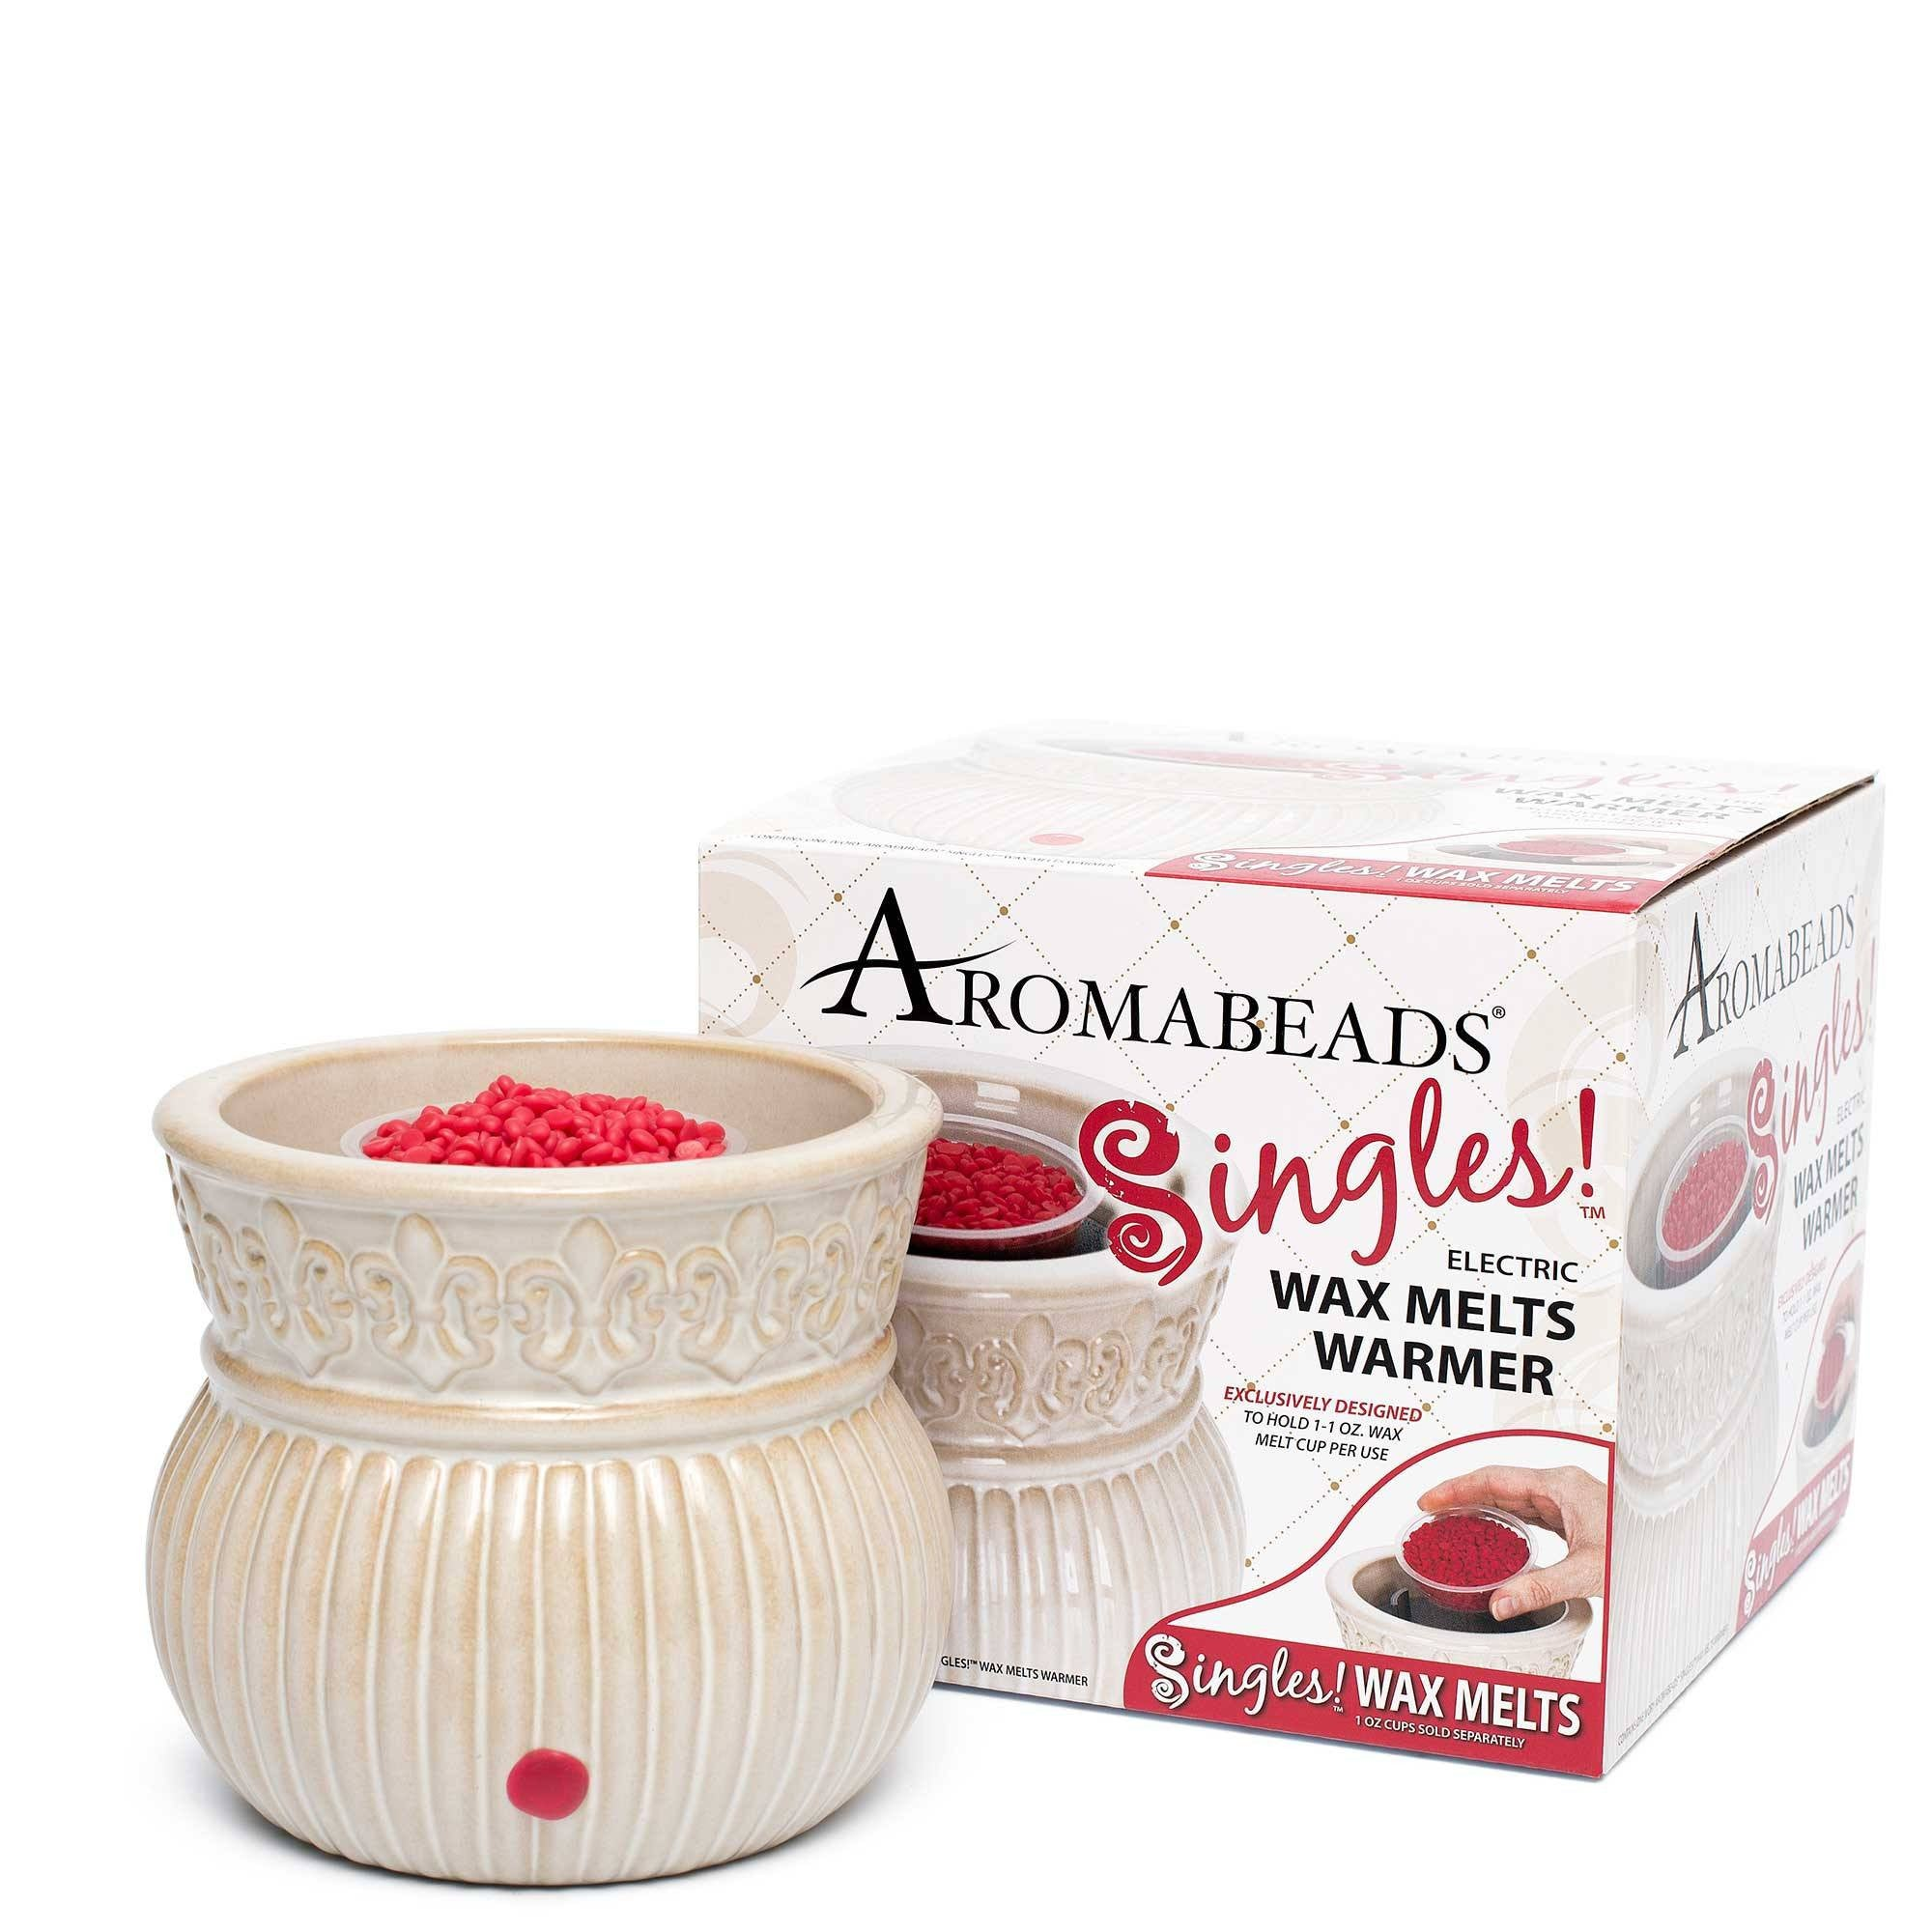 Aromabeads Singles Coral Honeysuckle Scented Wax Melts - Candlemart.com - 4